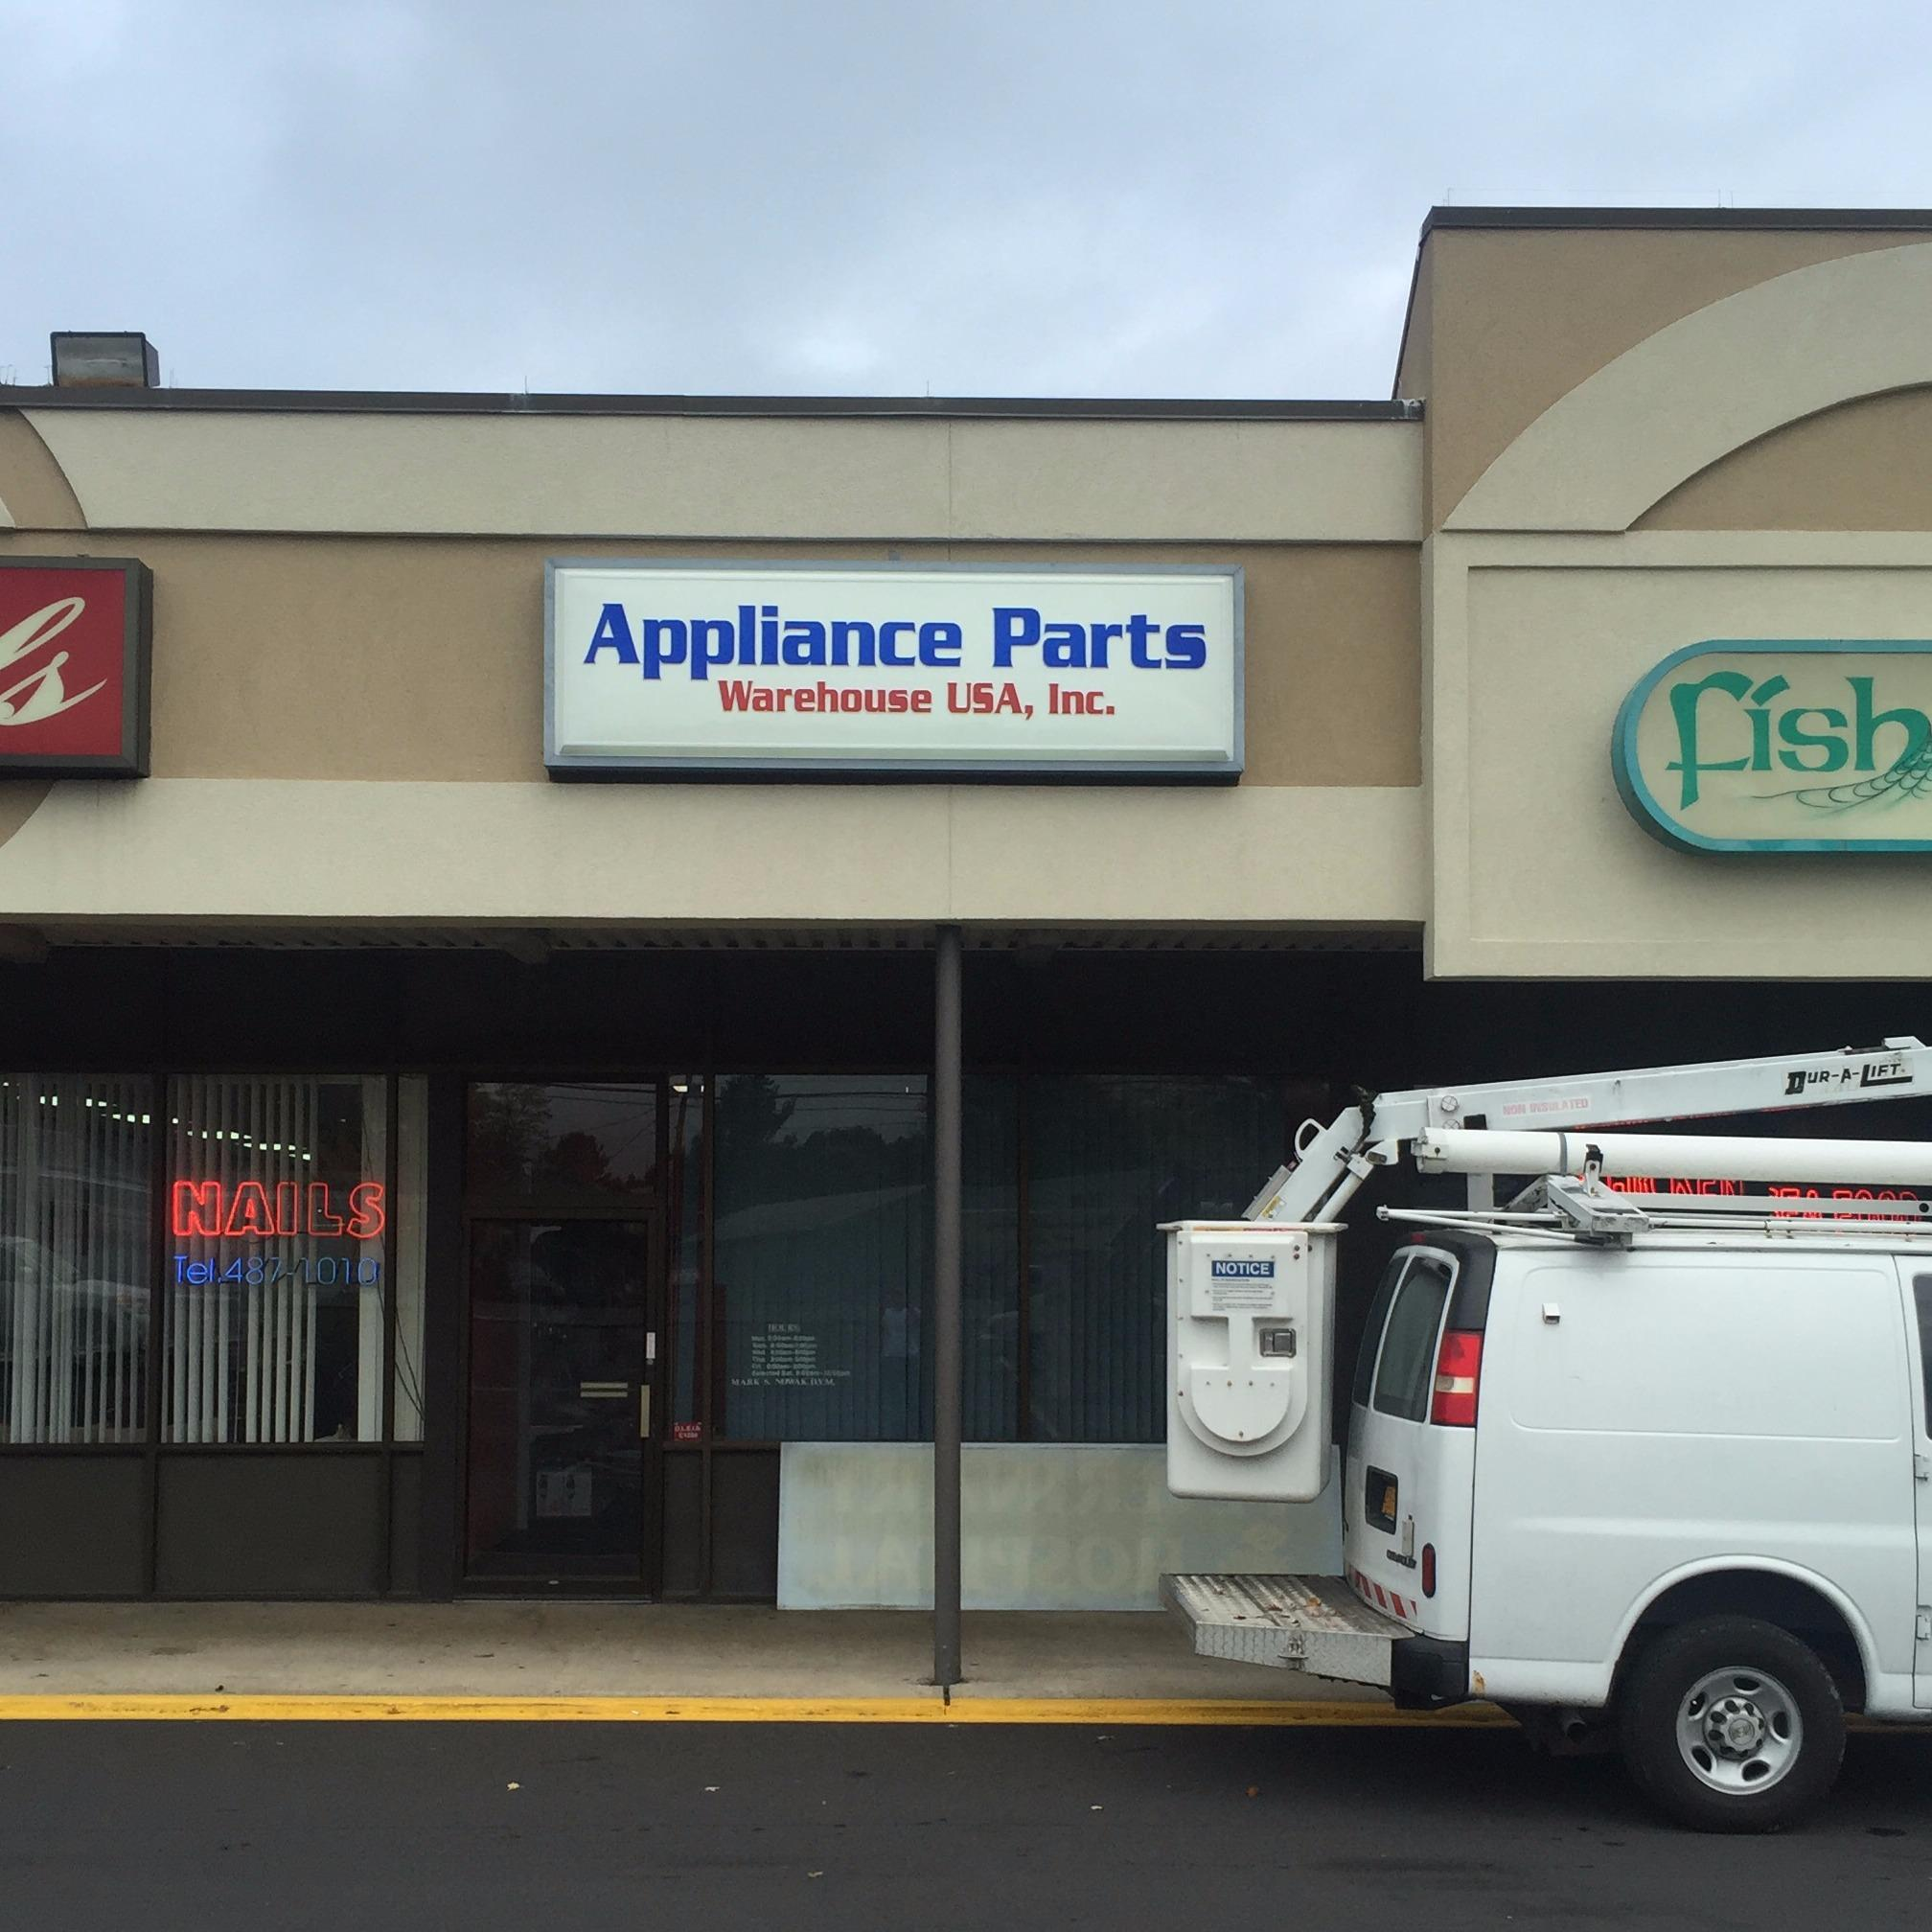 Appliance Parts Warehouse USA, Inc.